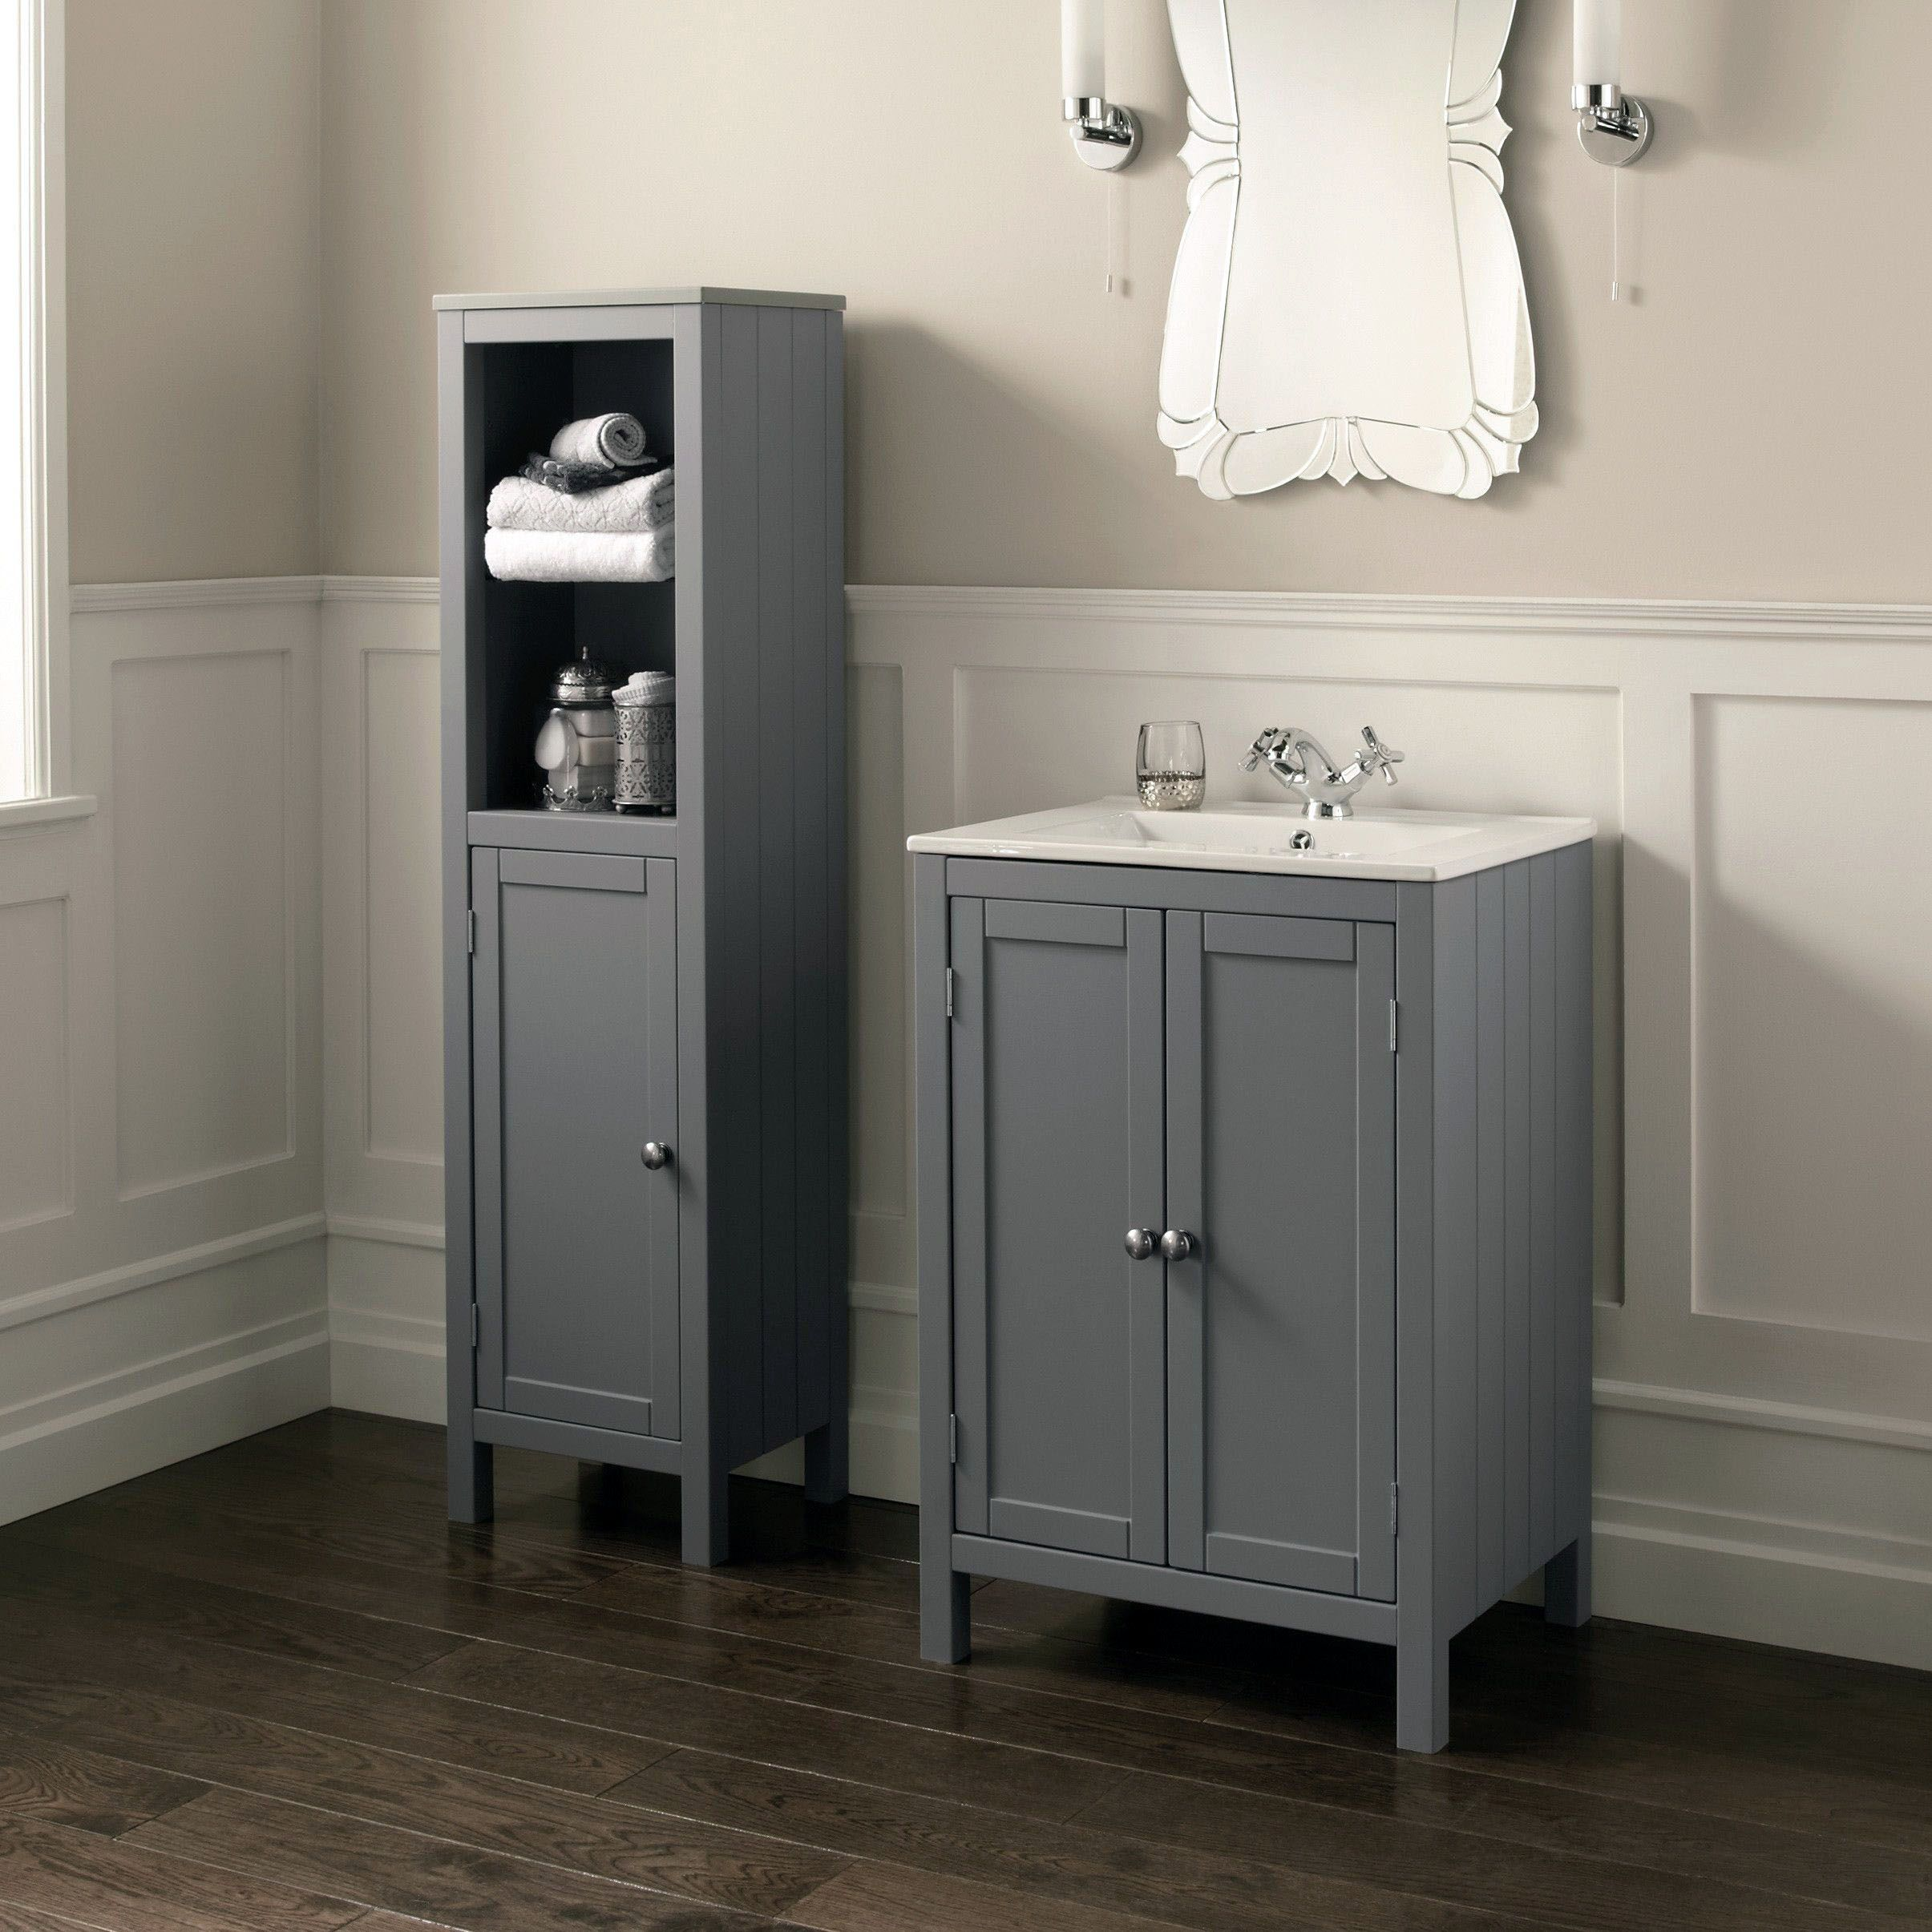 Design Tips To Create A Small Restroom Much Better Bathroom Units Bathroom Vanity Units Bathroom Sink Units